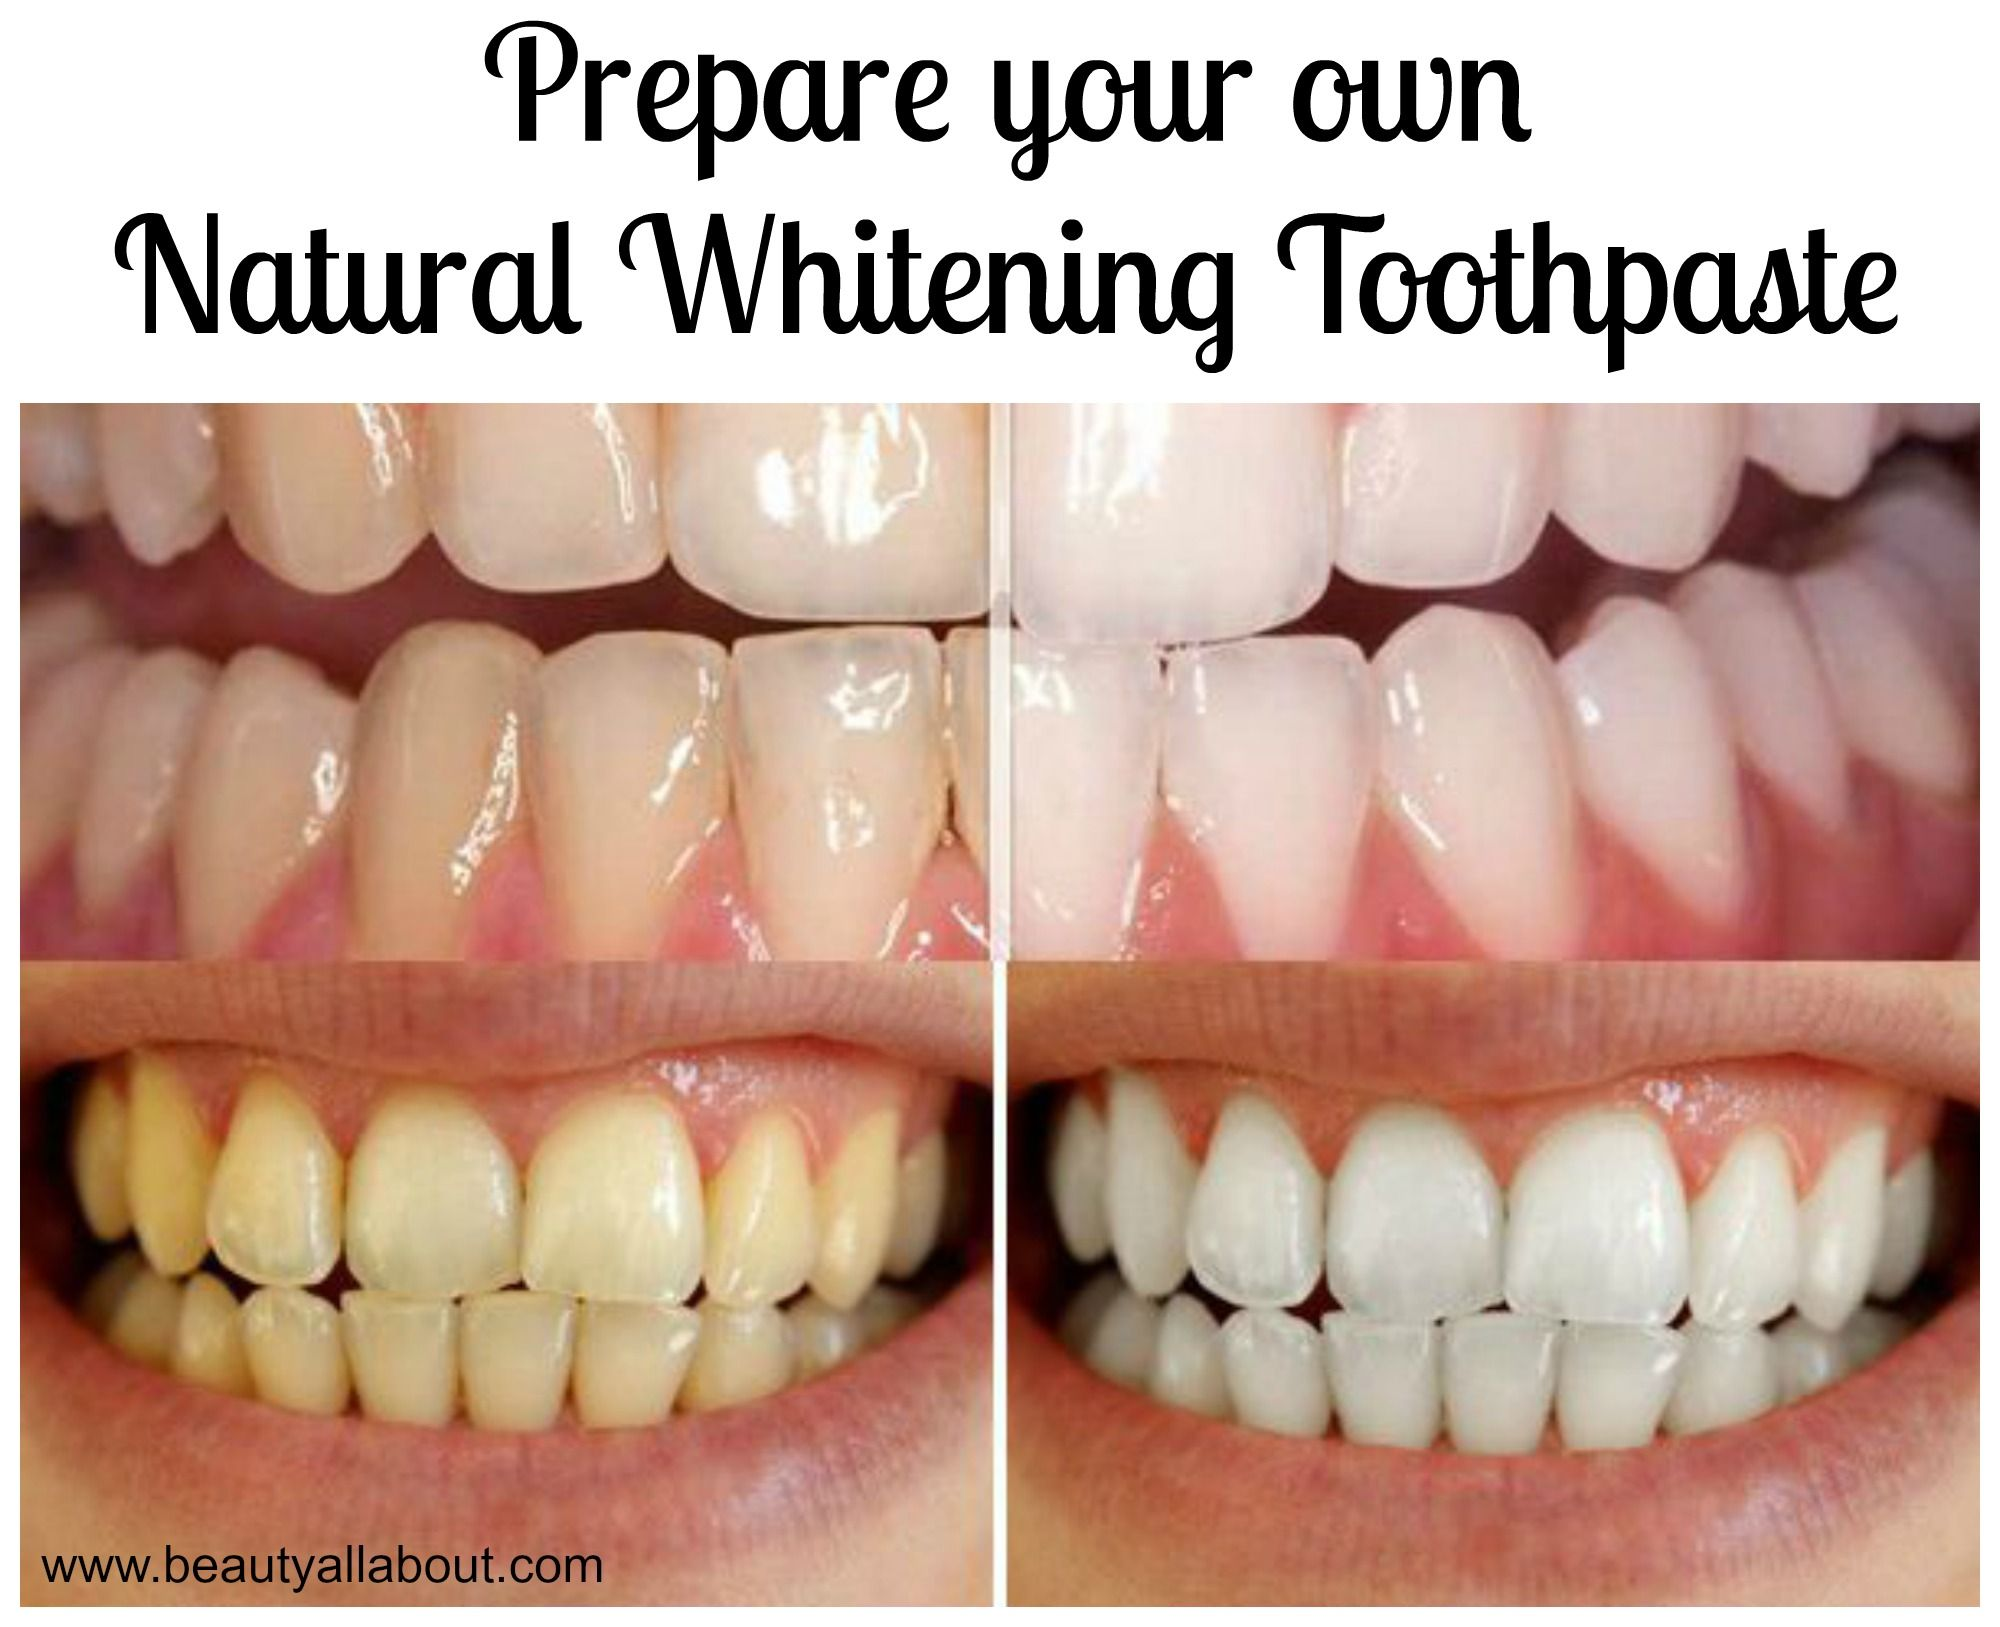 Diy natural whitening toothpasteg teeth whitening homemade